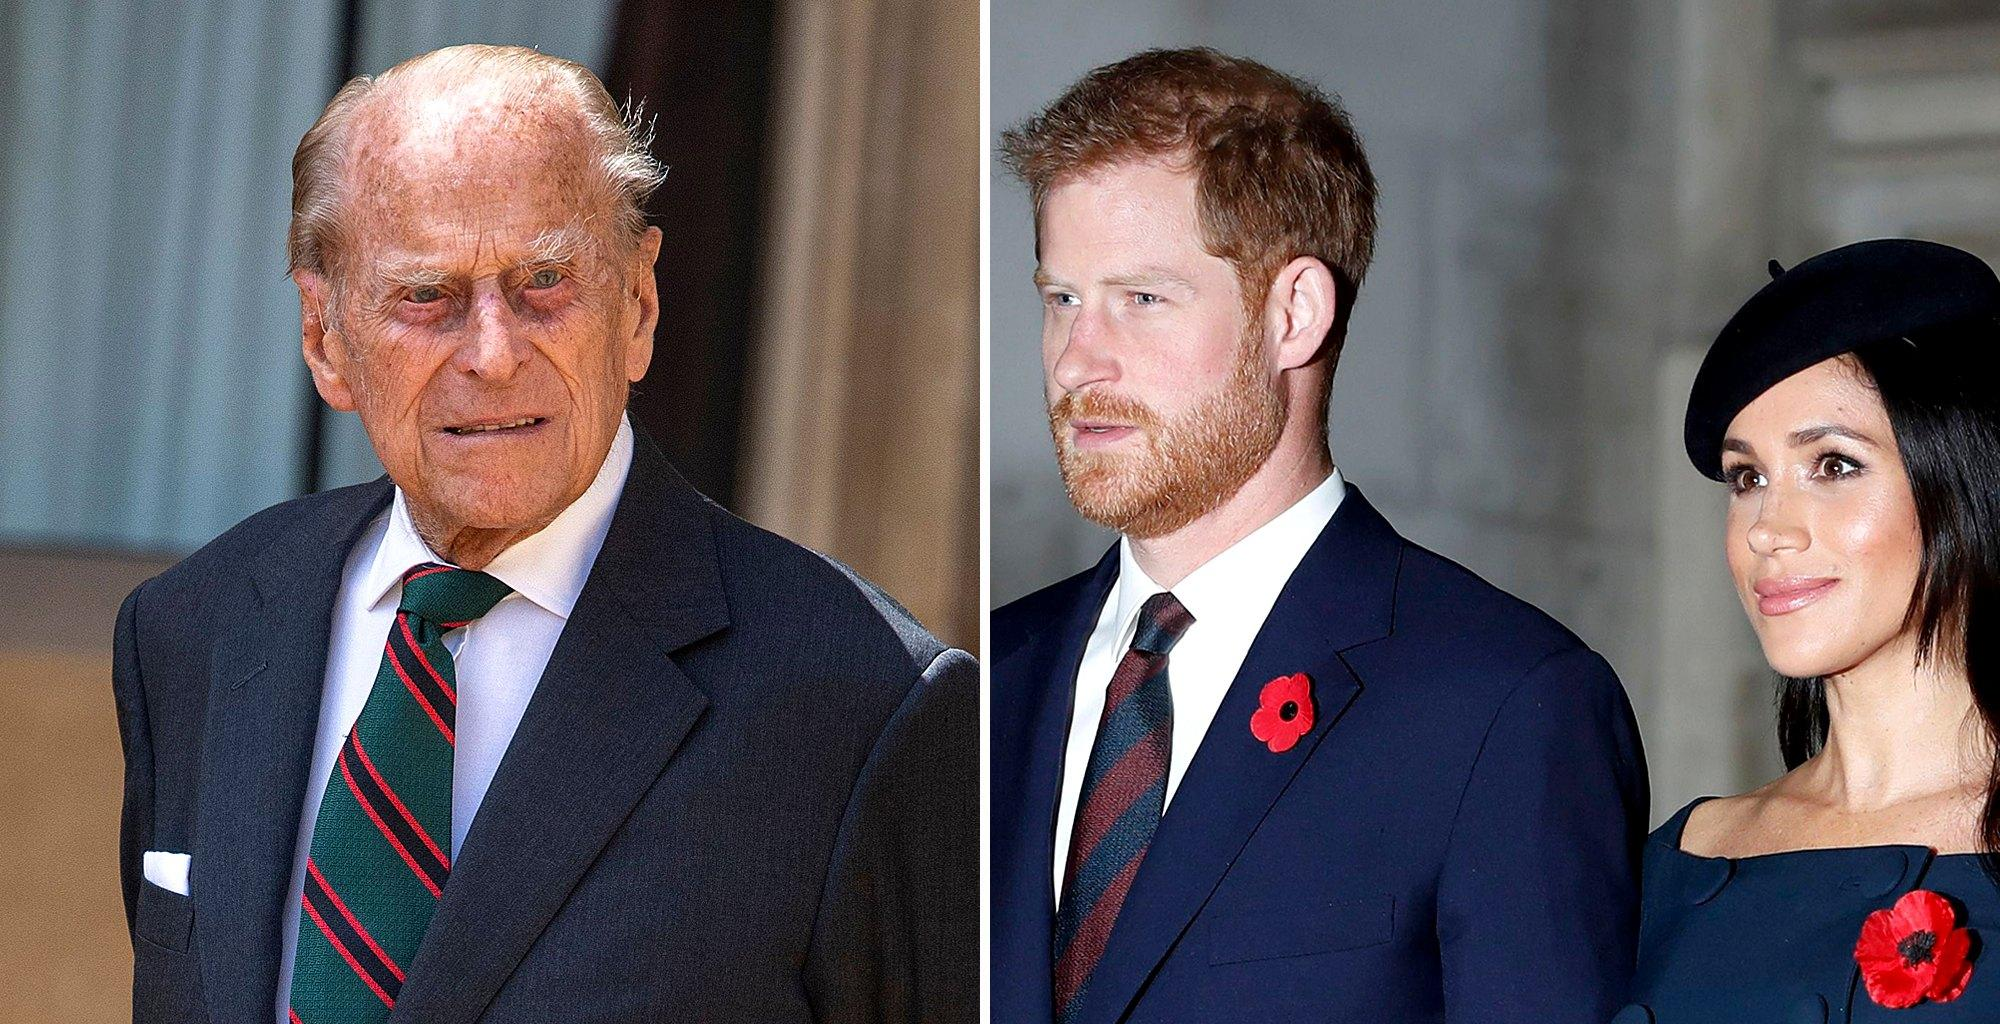 Prince Harry And Meghan Markle Pay Tribute To Prince Philip After His Passing